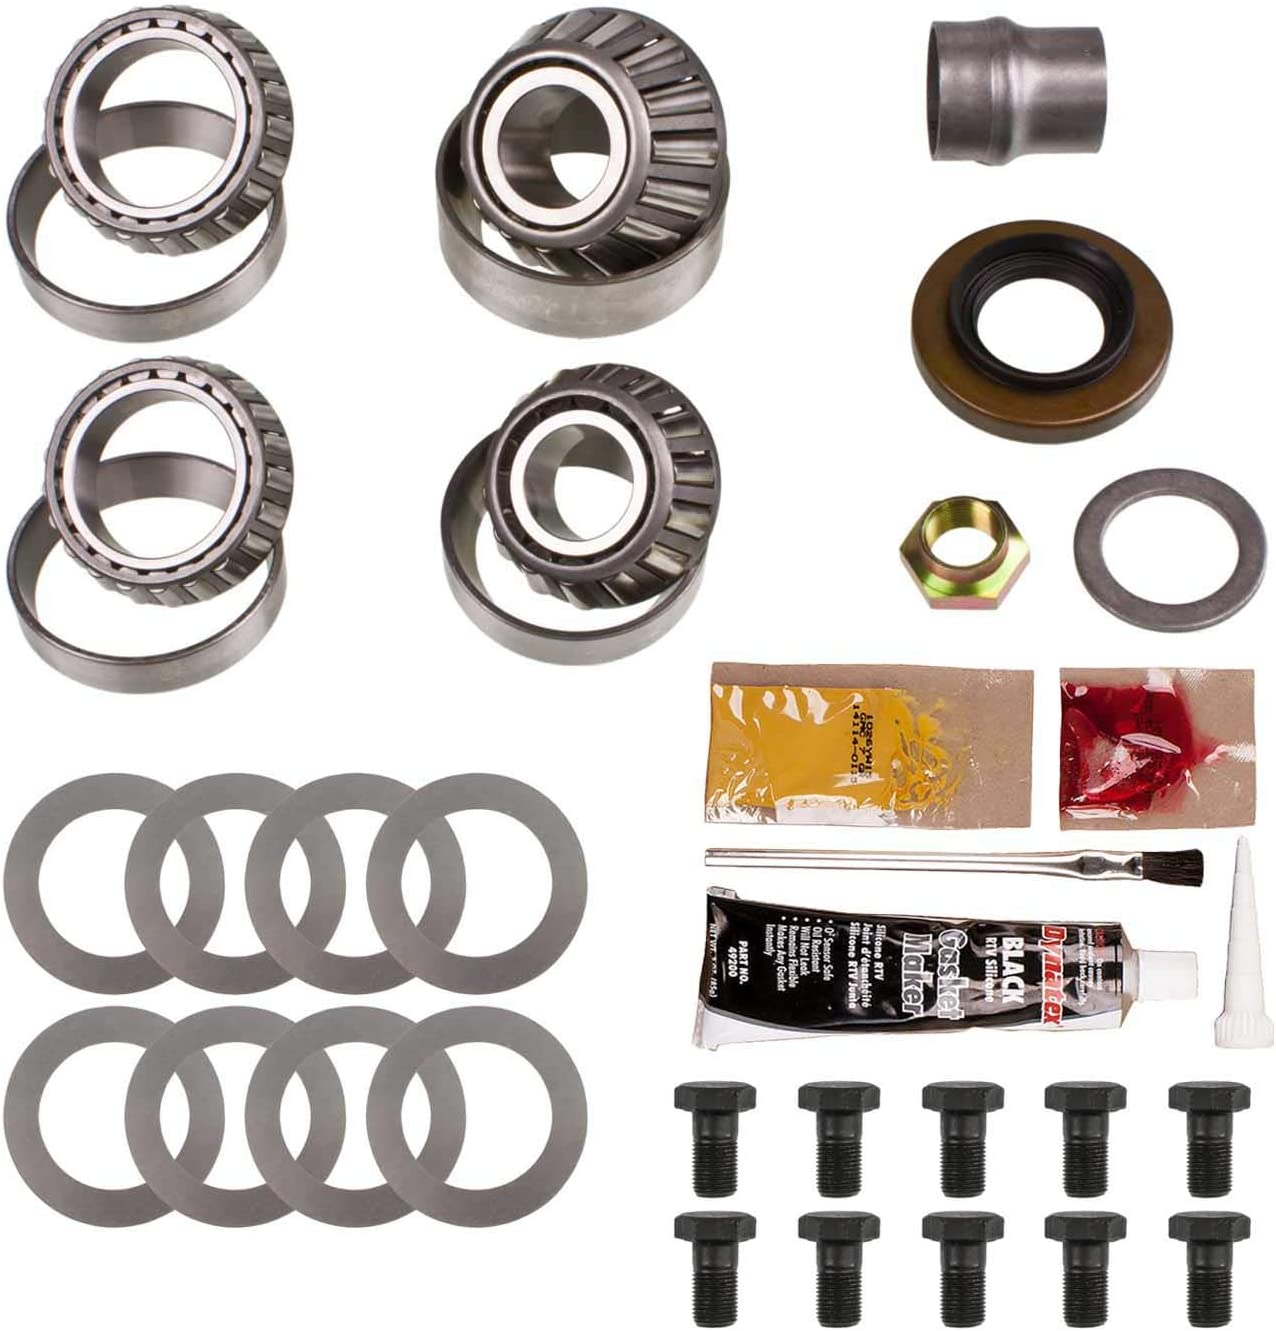 ExCel XL-1046-1 Oakland Mall Ring and Pinion Install Kit TU P Toyota V-6 Ranking TOP15 1